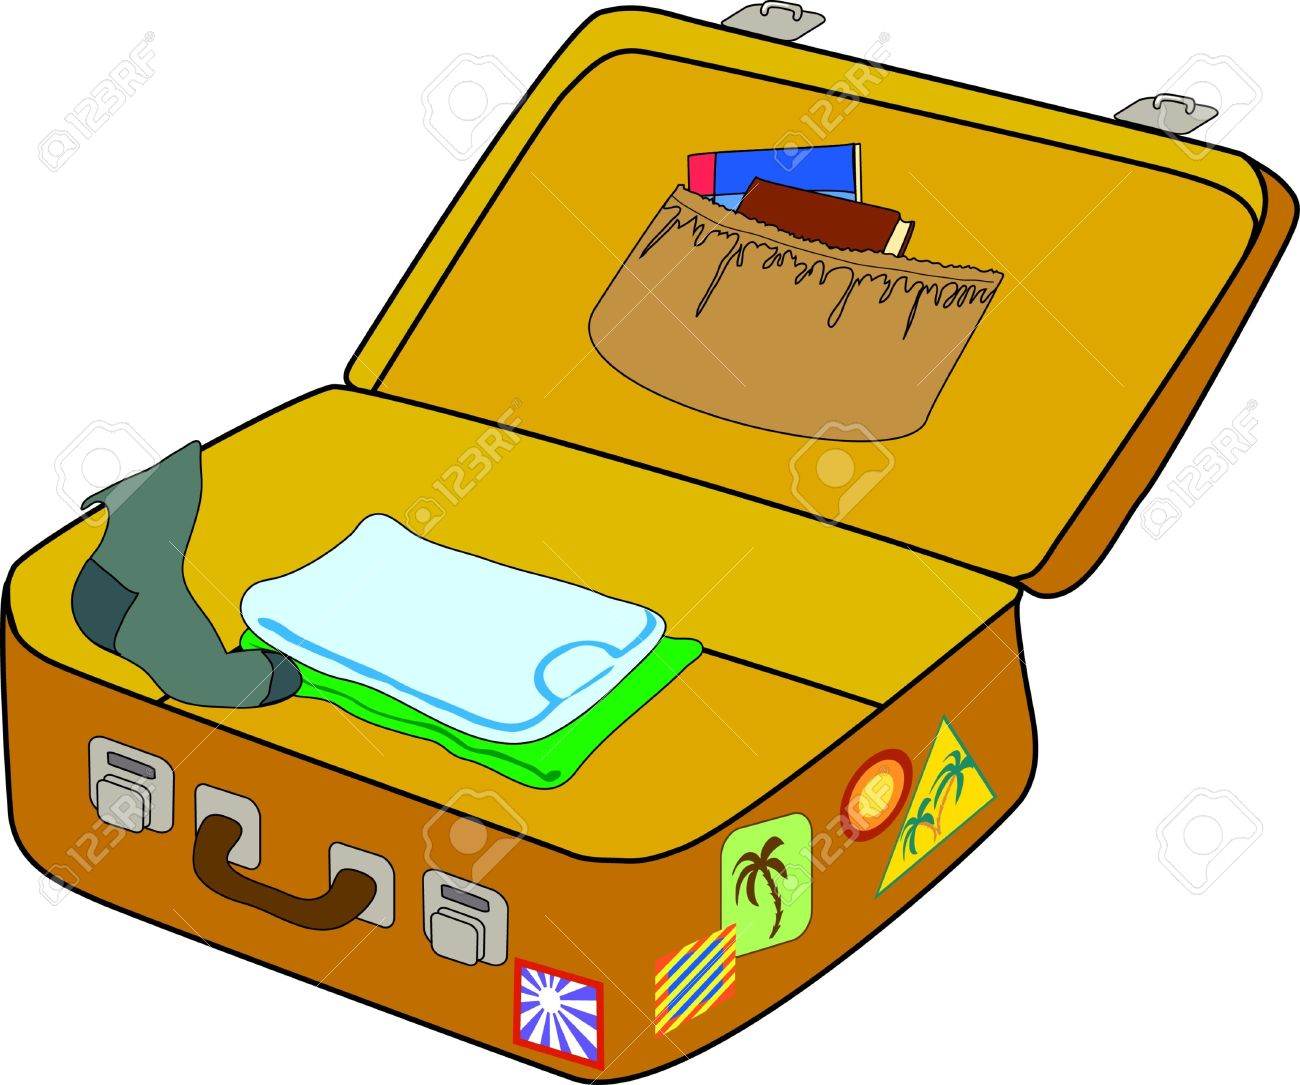 Clipart packing suitcase.